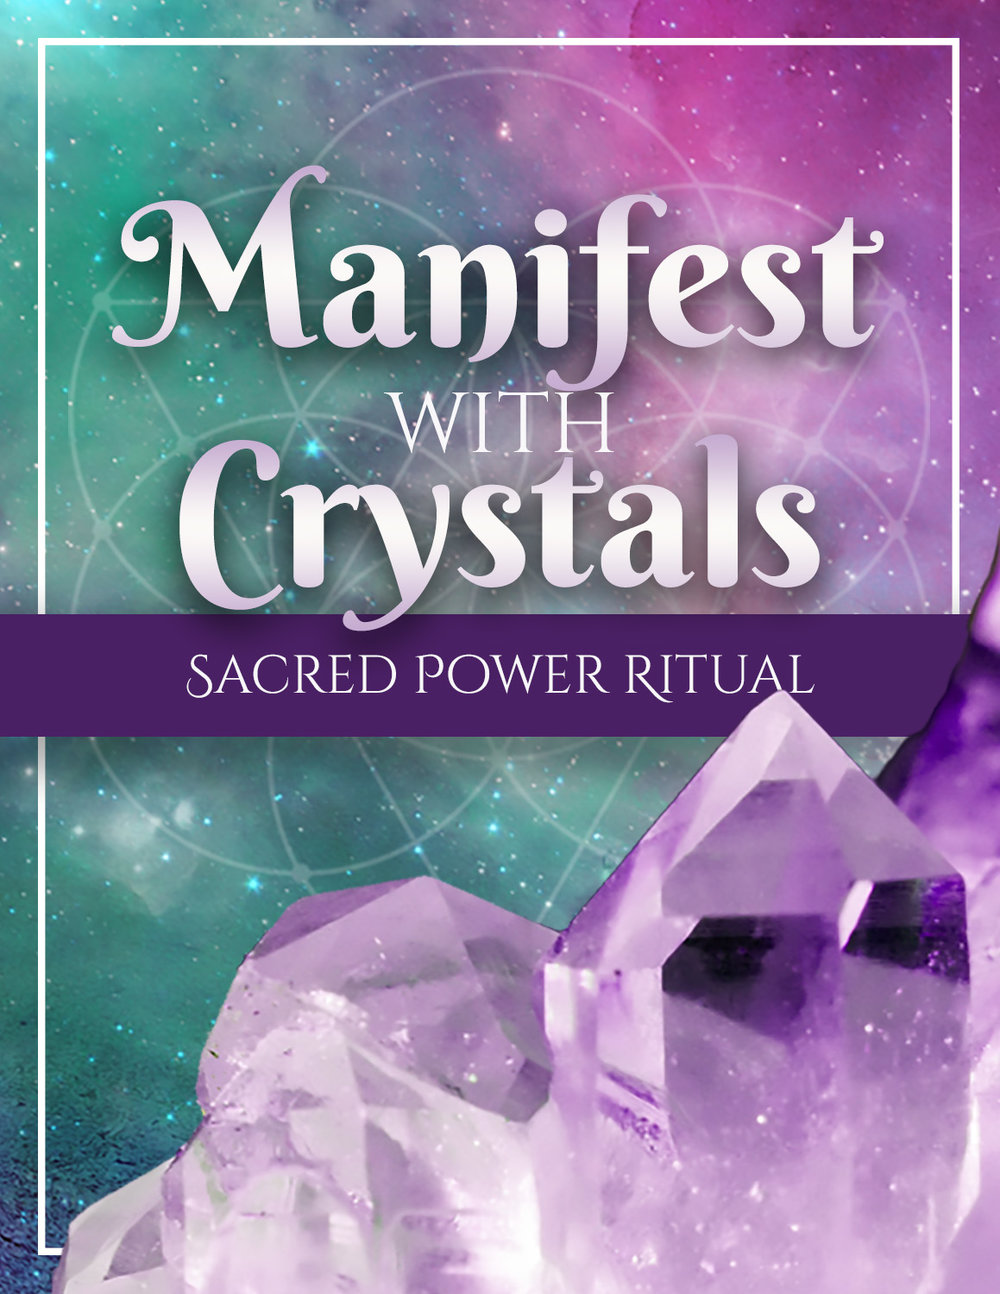 manifest-with-crystals.jpg